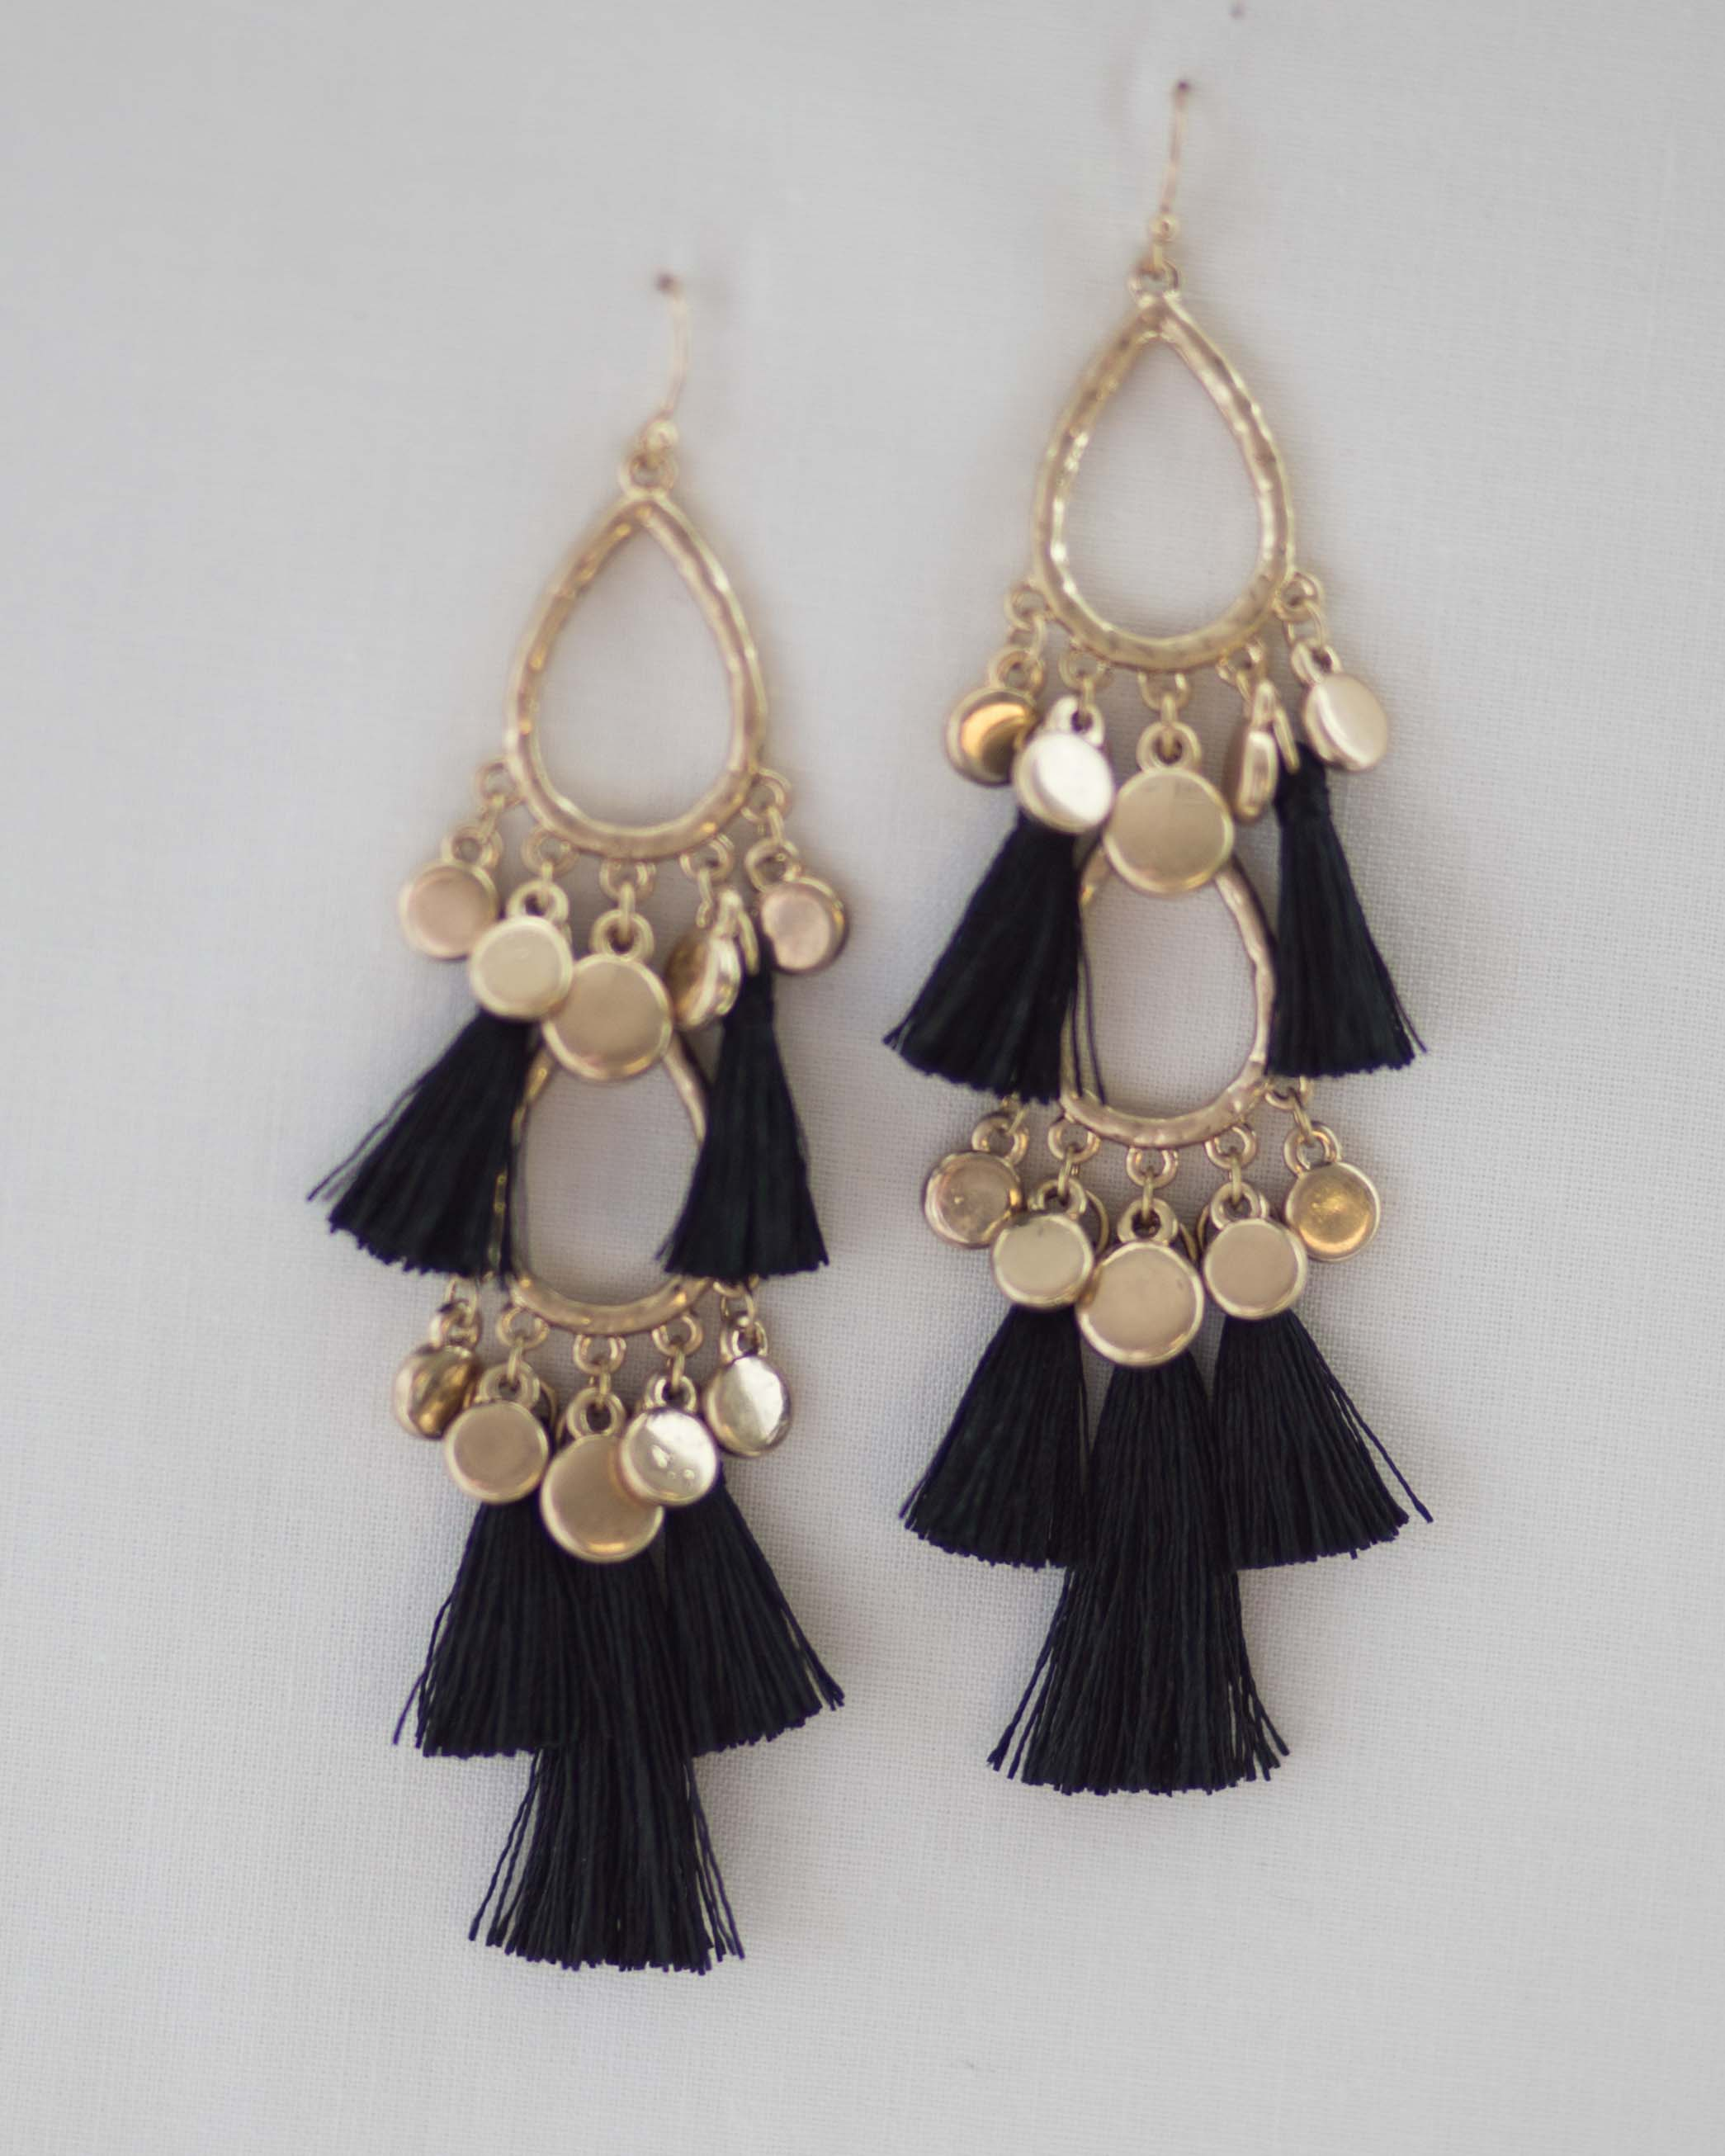 Ellis Tassel Drop Earrings | Rose & Remington